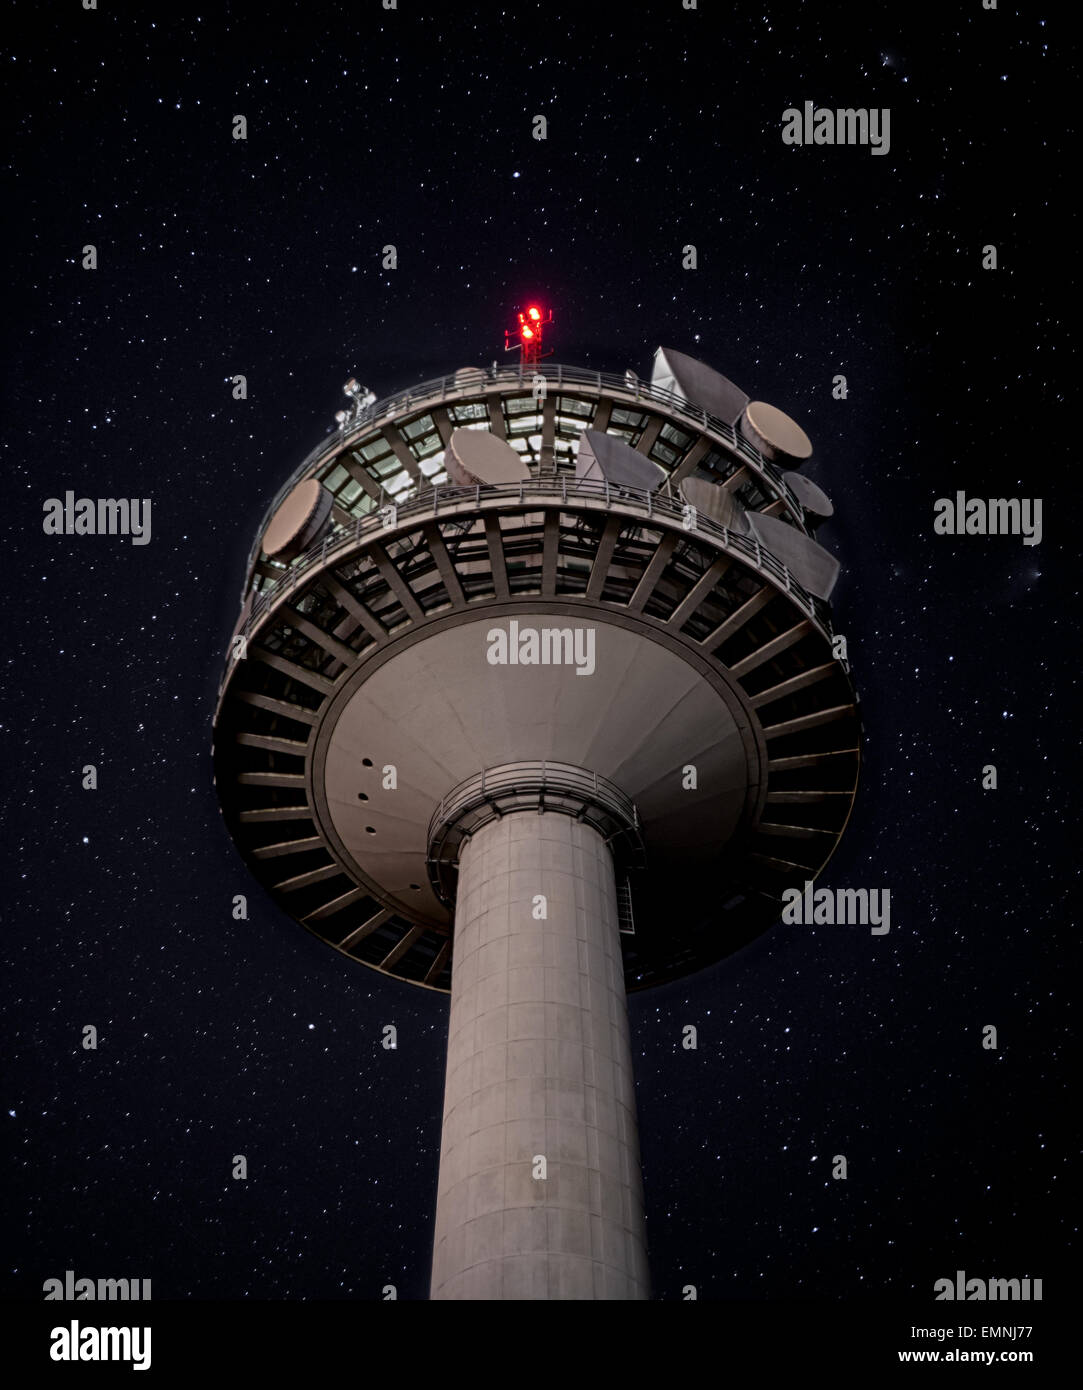 The lofty tower - Stock Image